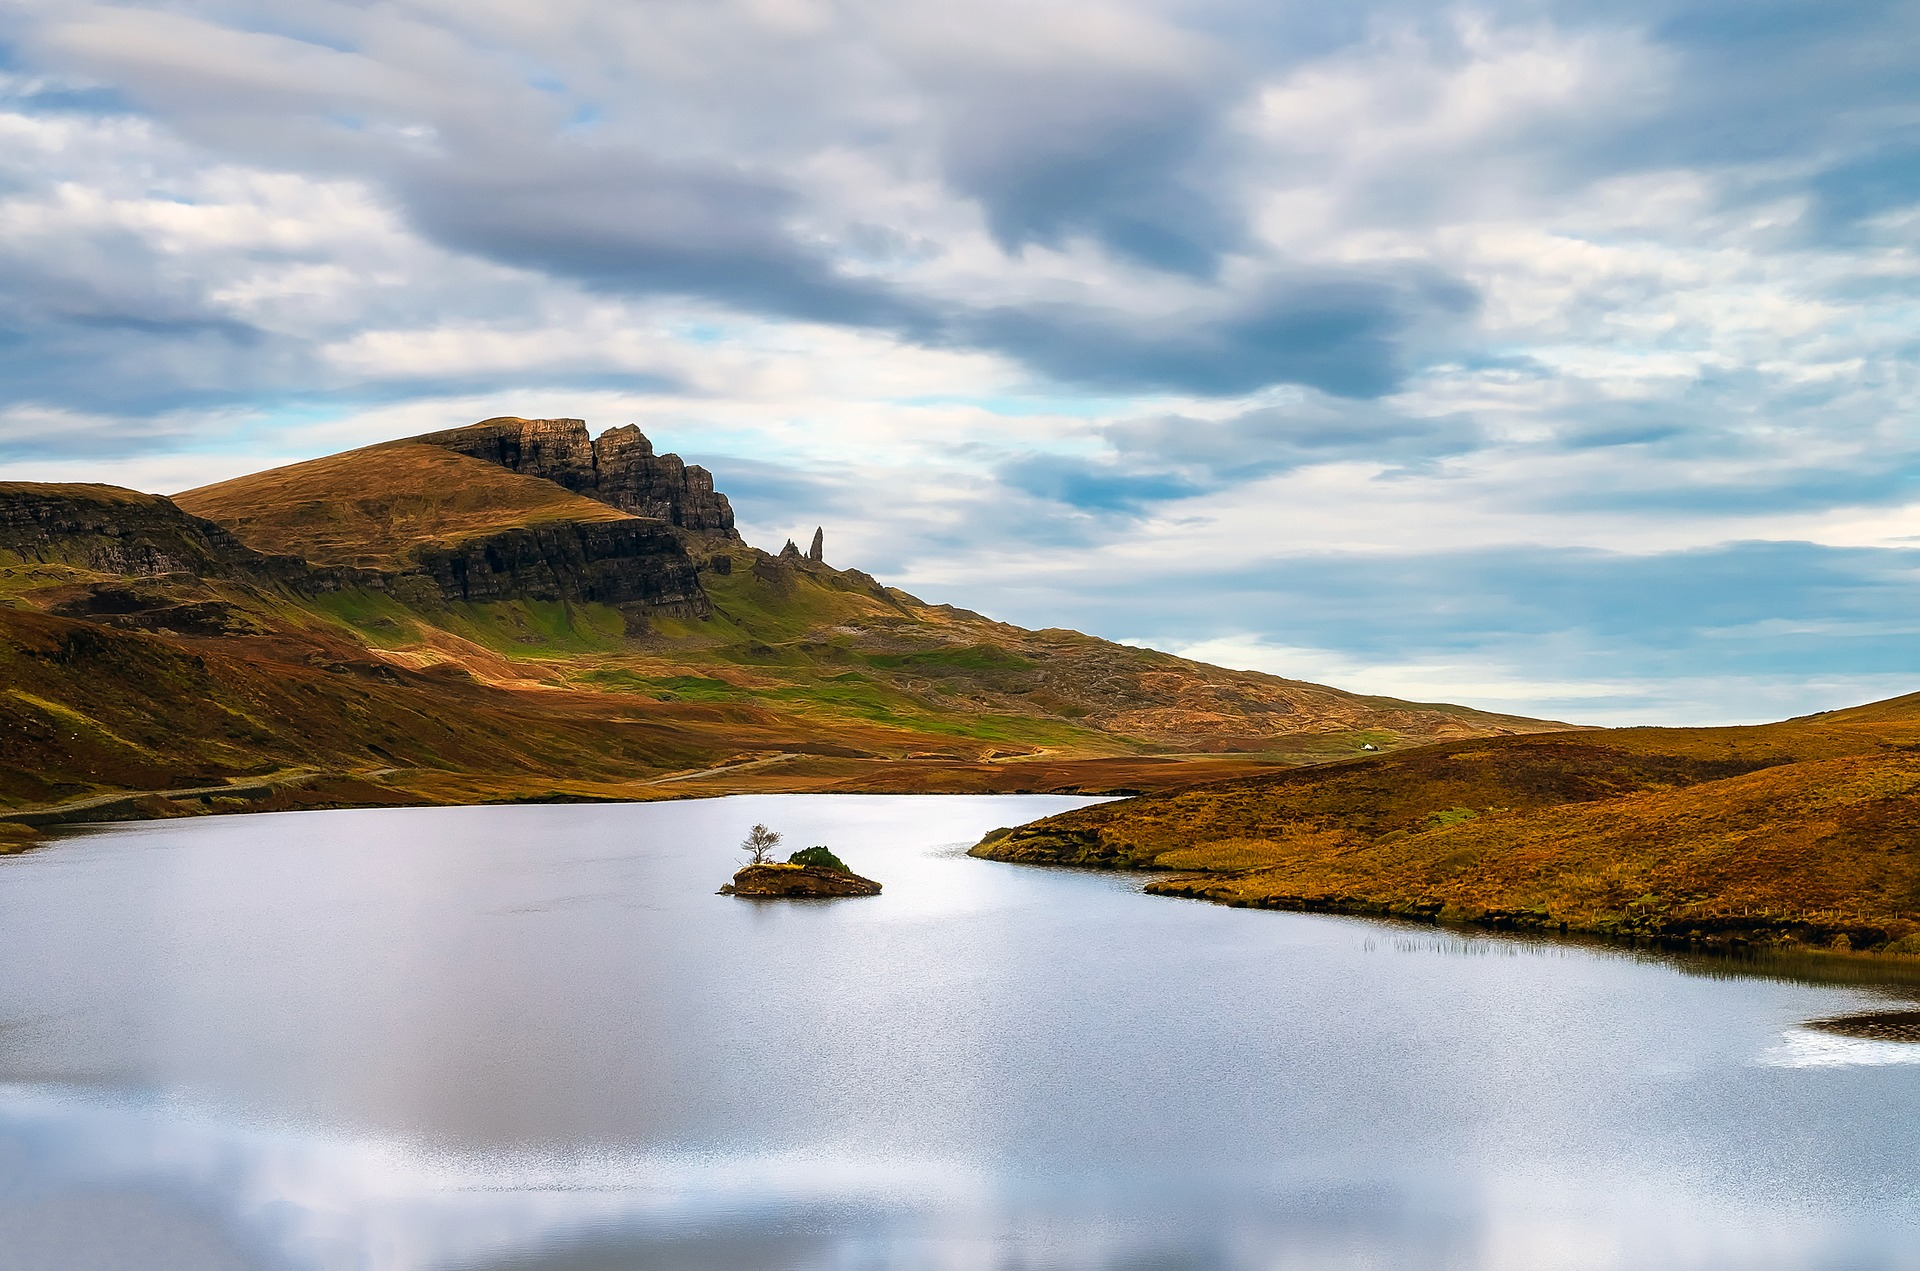 Landscape photo of the isle of Skye